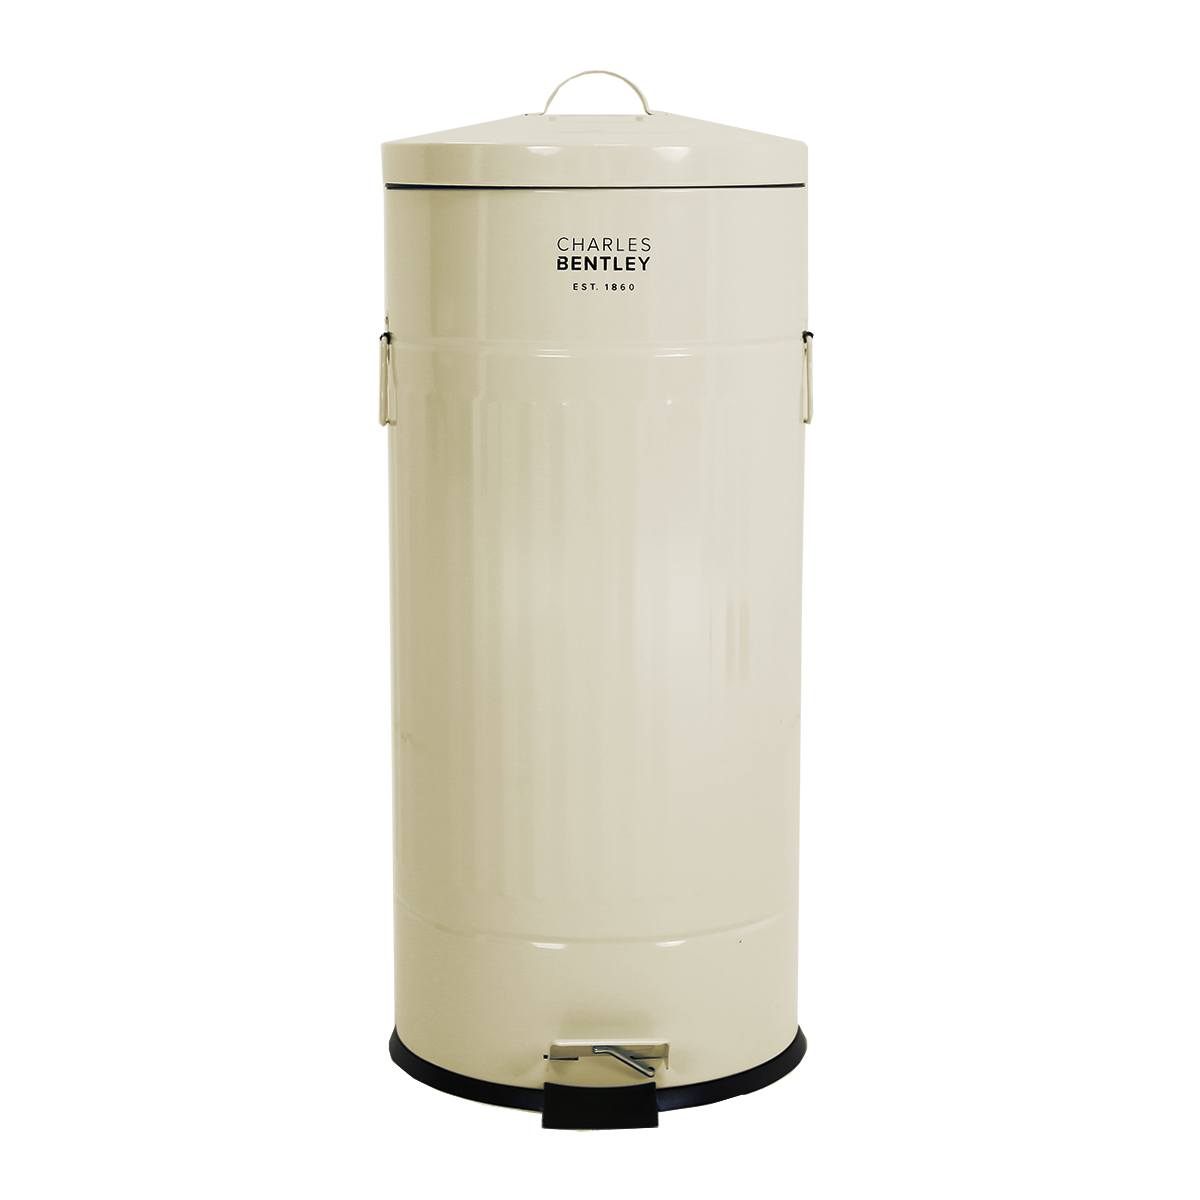 Charles-Bentley-Kitchen-Pedal-Bin-in-Various-Colours-Made-of-Steel-30-Ltr thumbnail 2